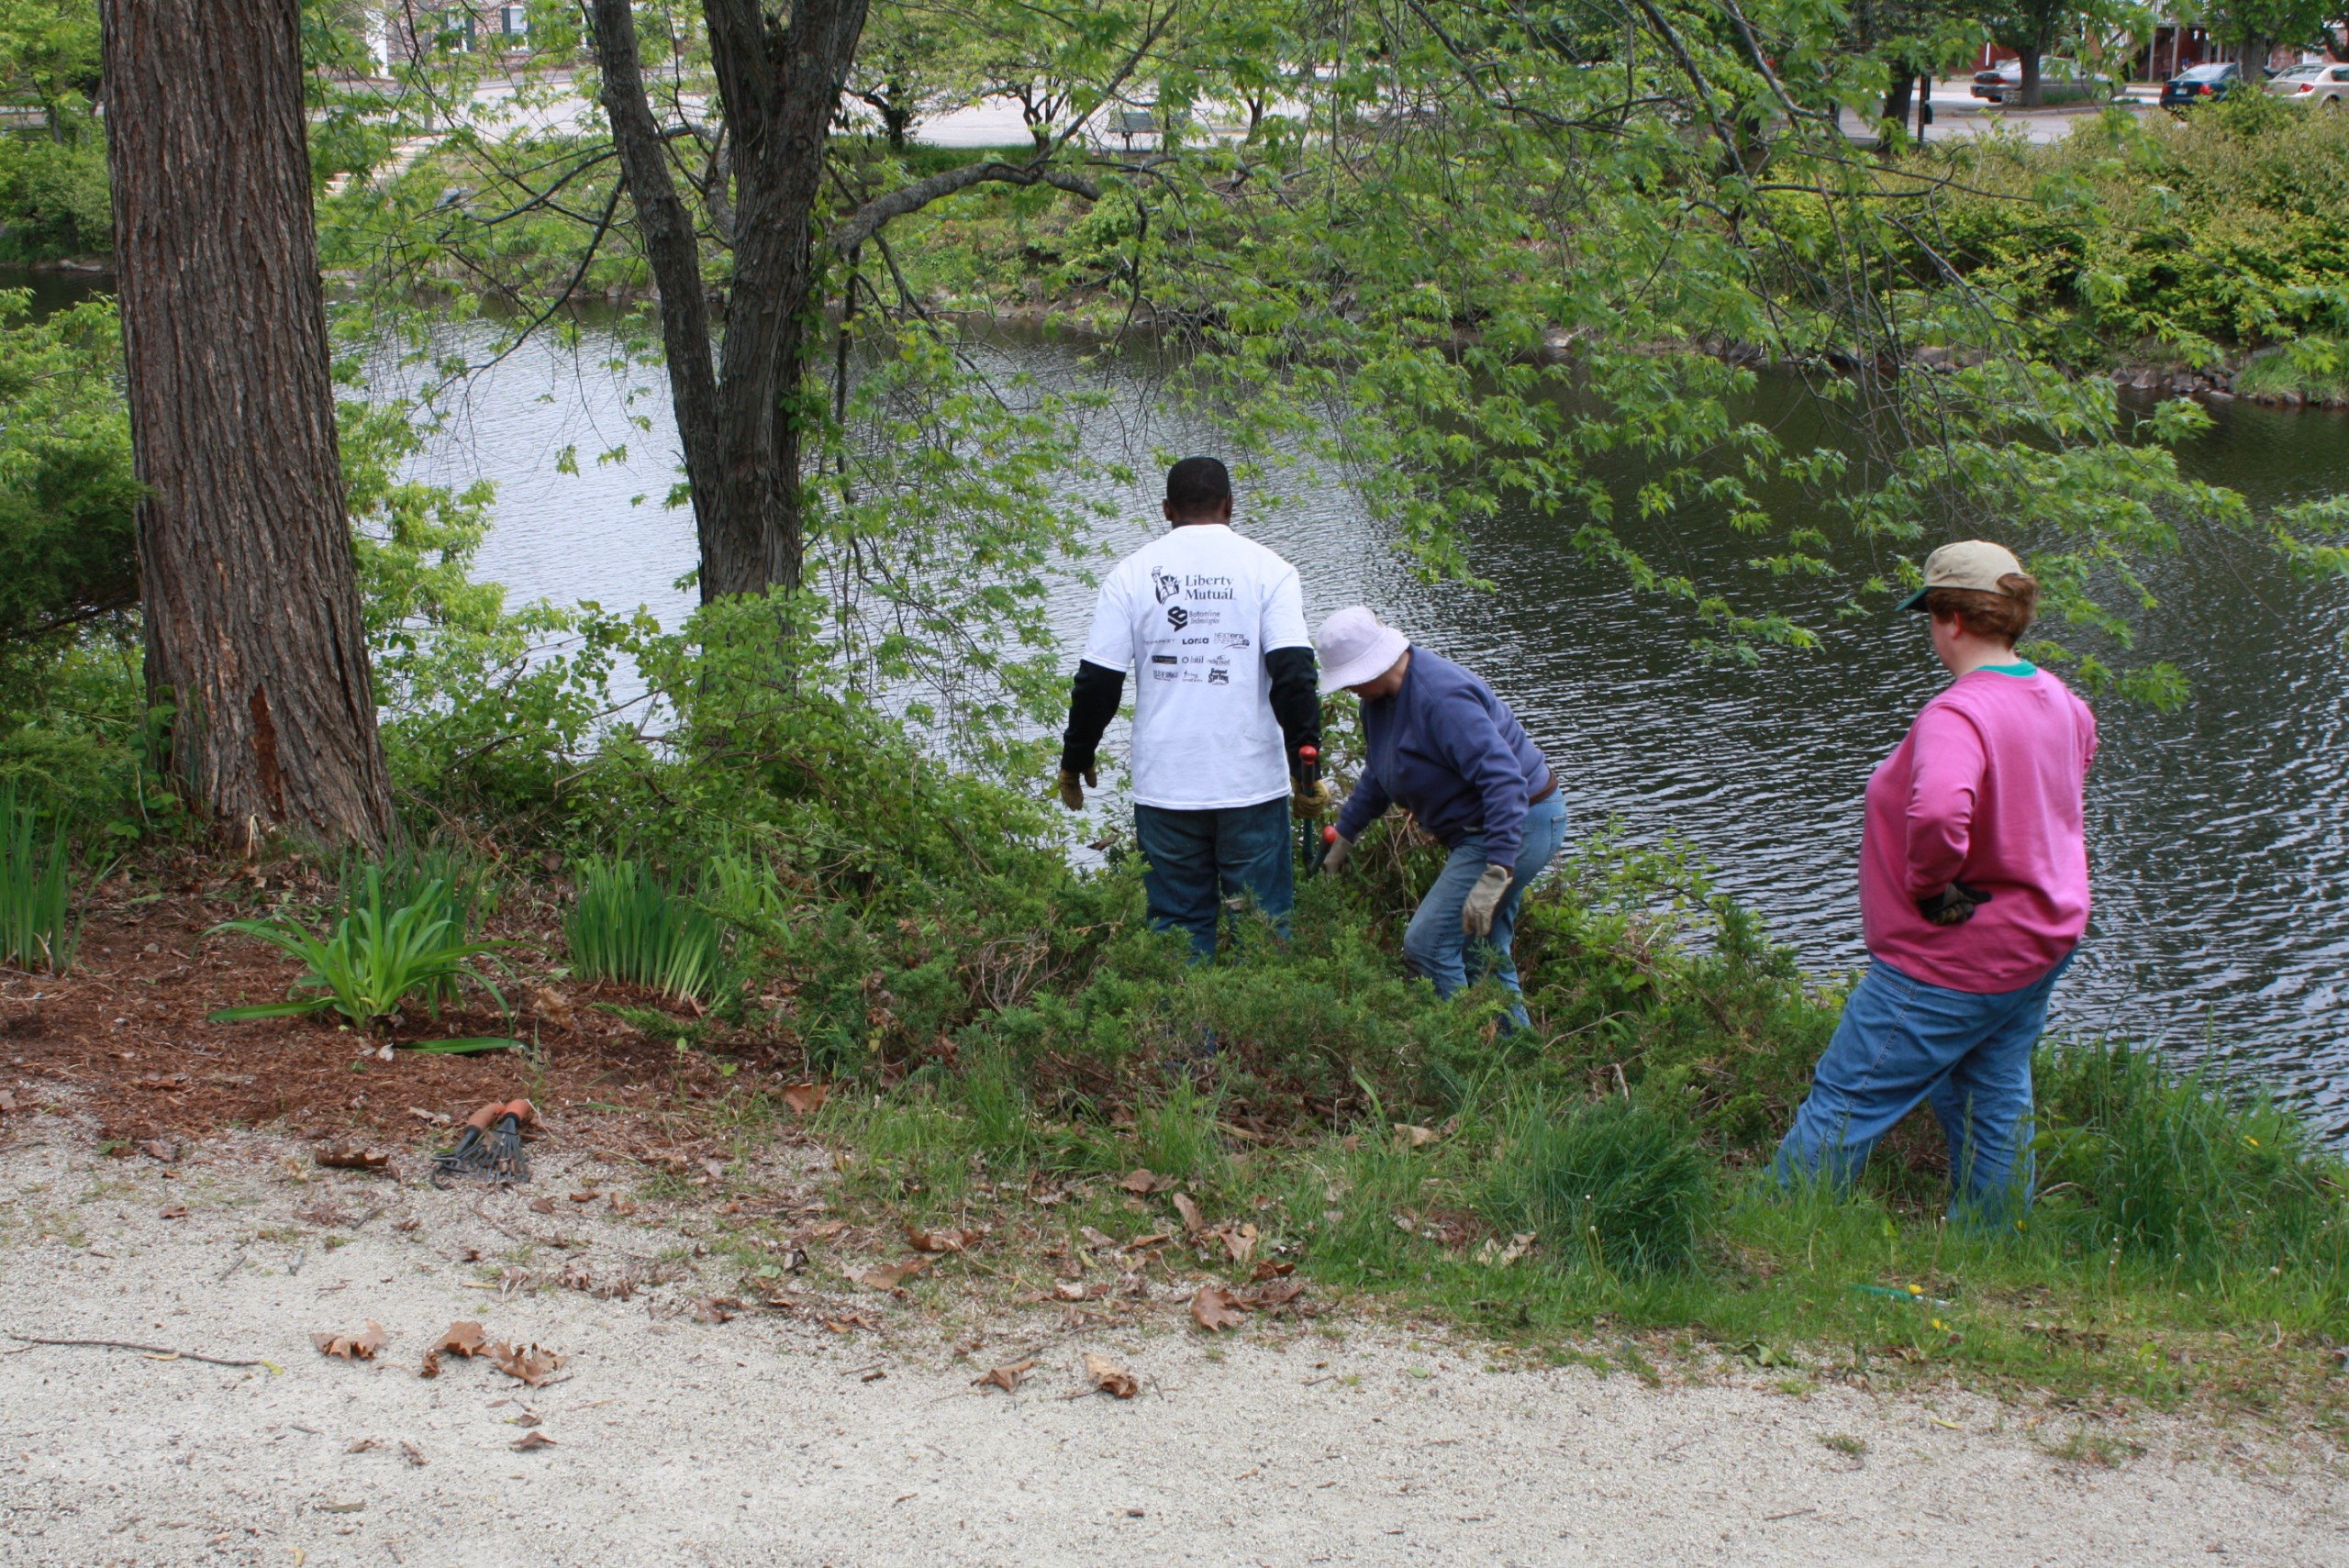 dover-clean-up-day-april-17-2010-010